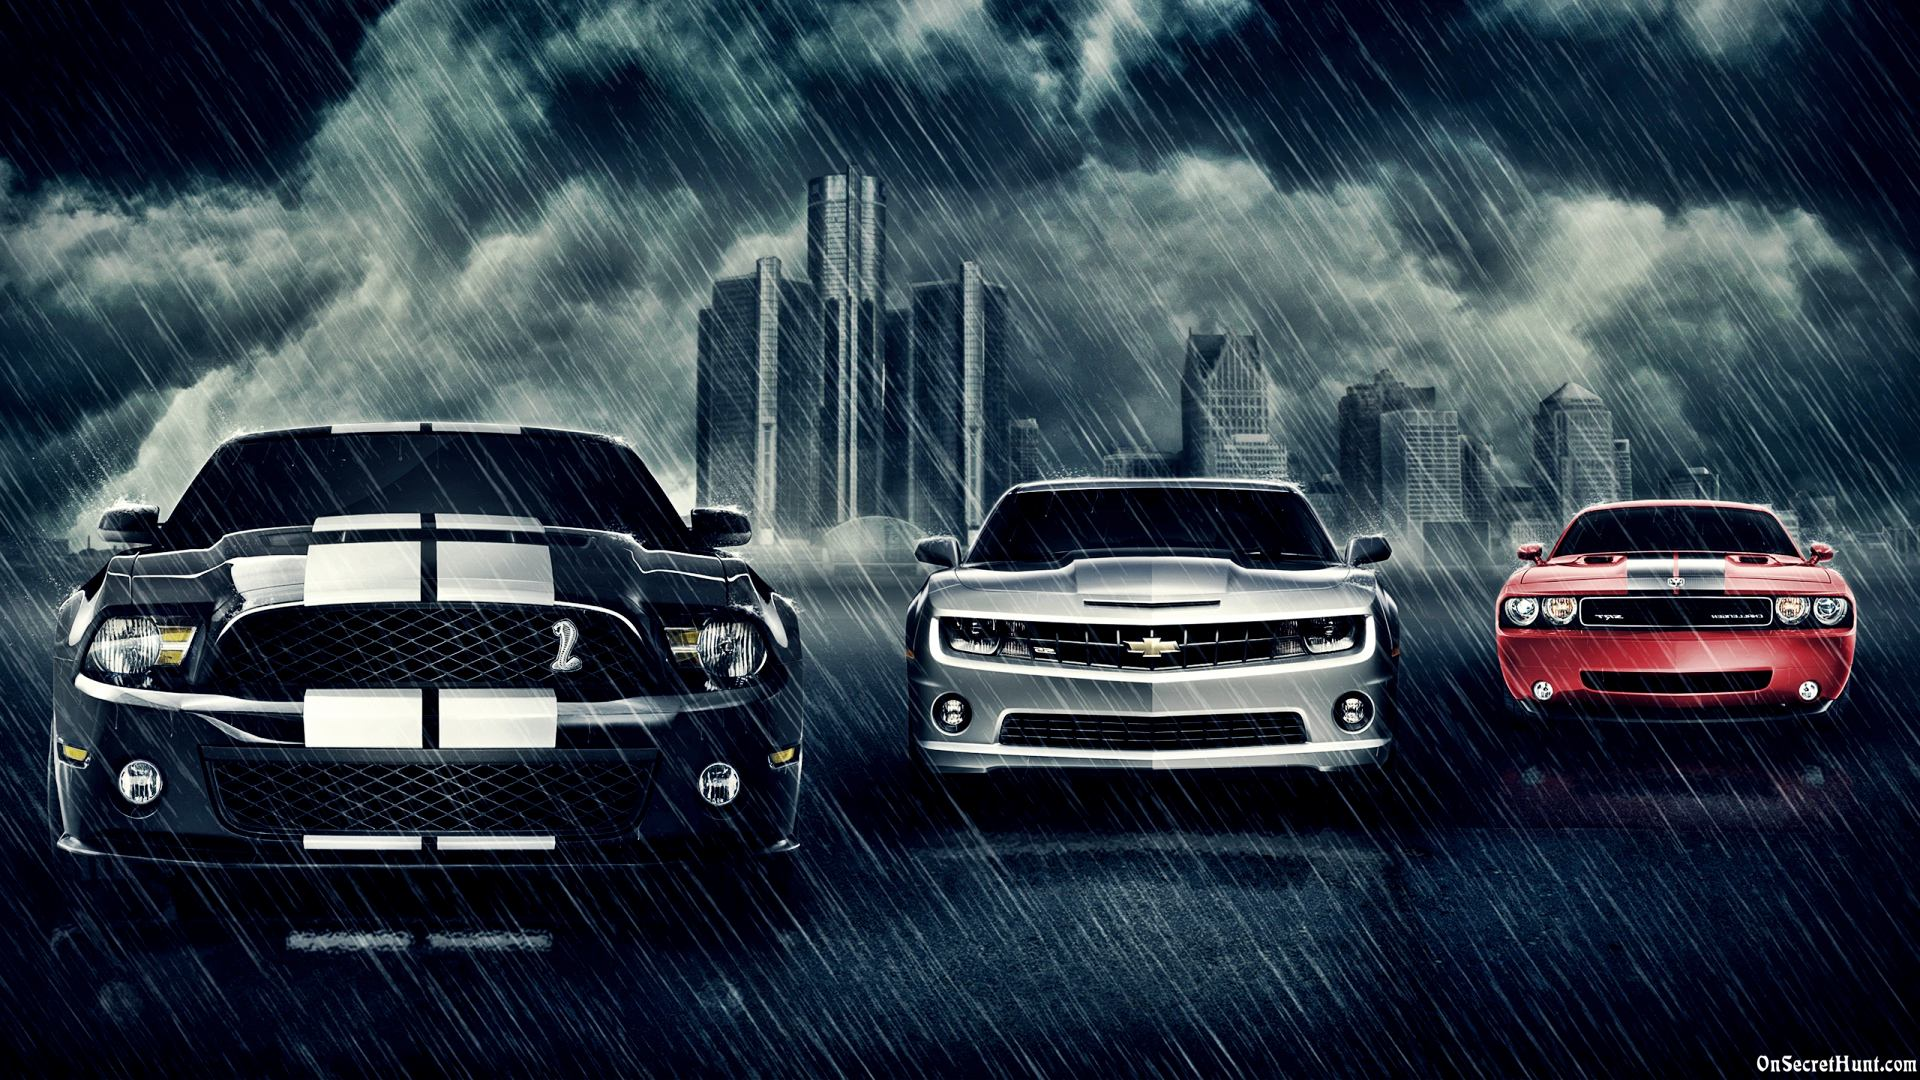 Car Backgrounds